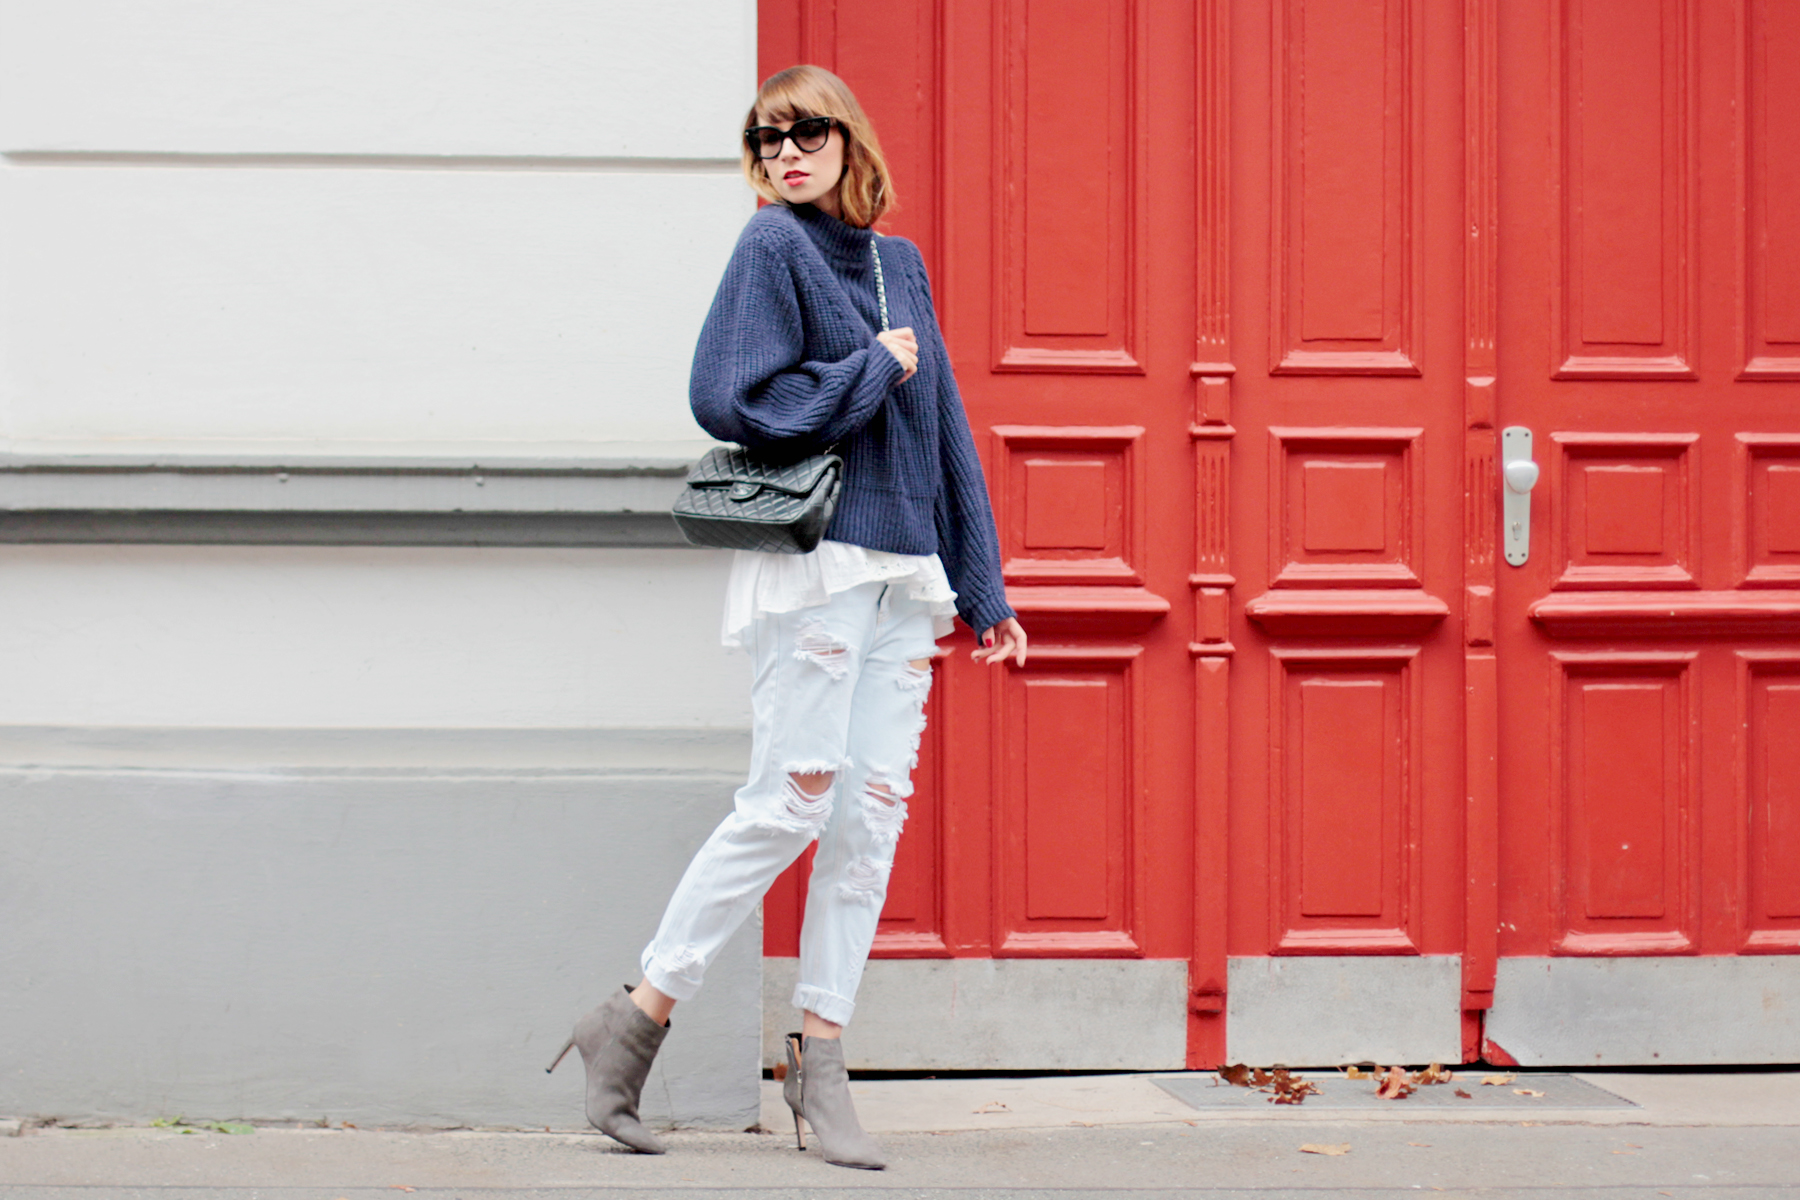 ootd outfit cozy winter female outfit boyfriend jeans lace chanel double flap knitwear blue red door styling fashionblogger cats & dogs modeblog ricarda schernus hannover düsseldorf berlin 6